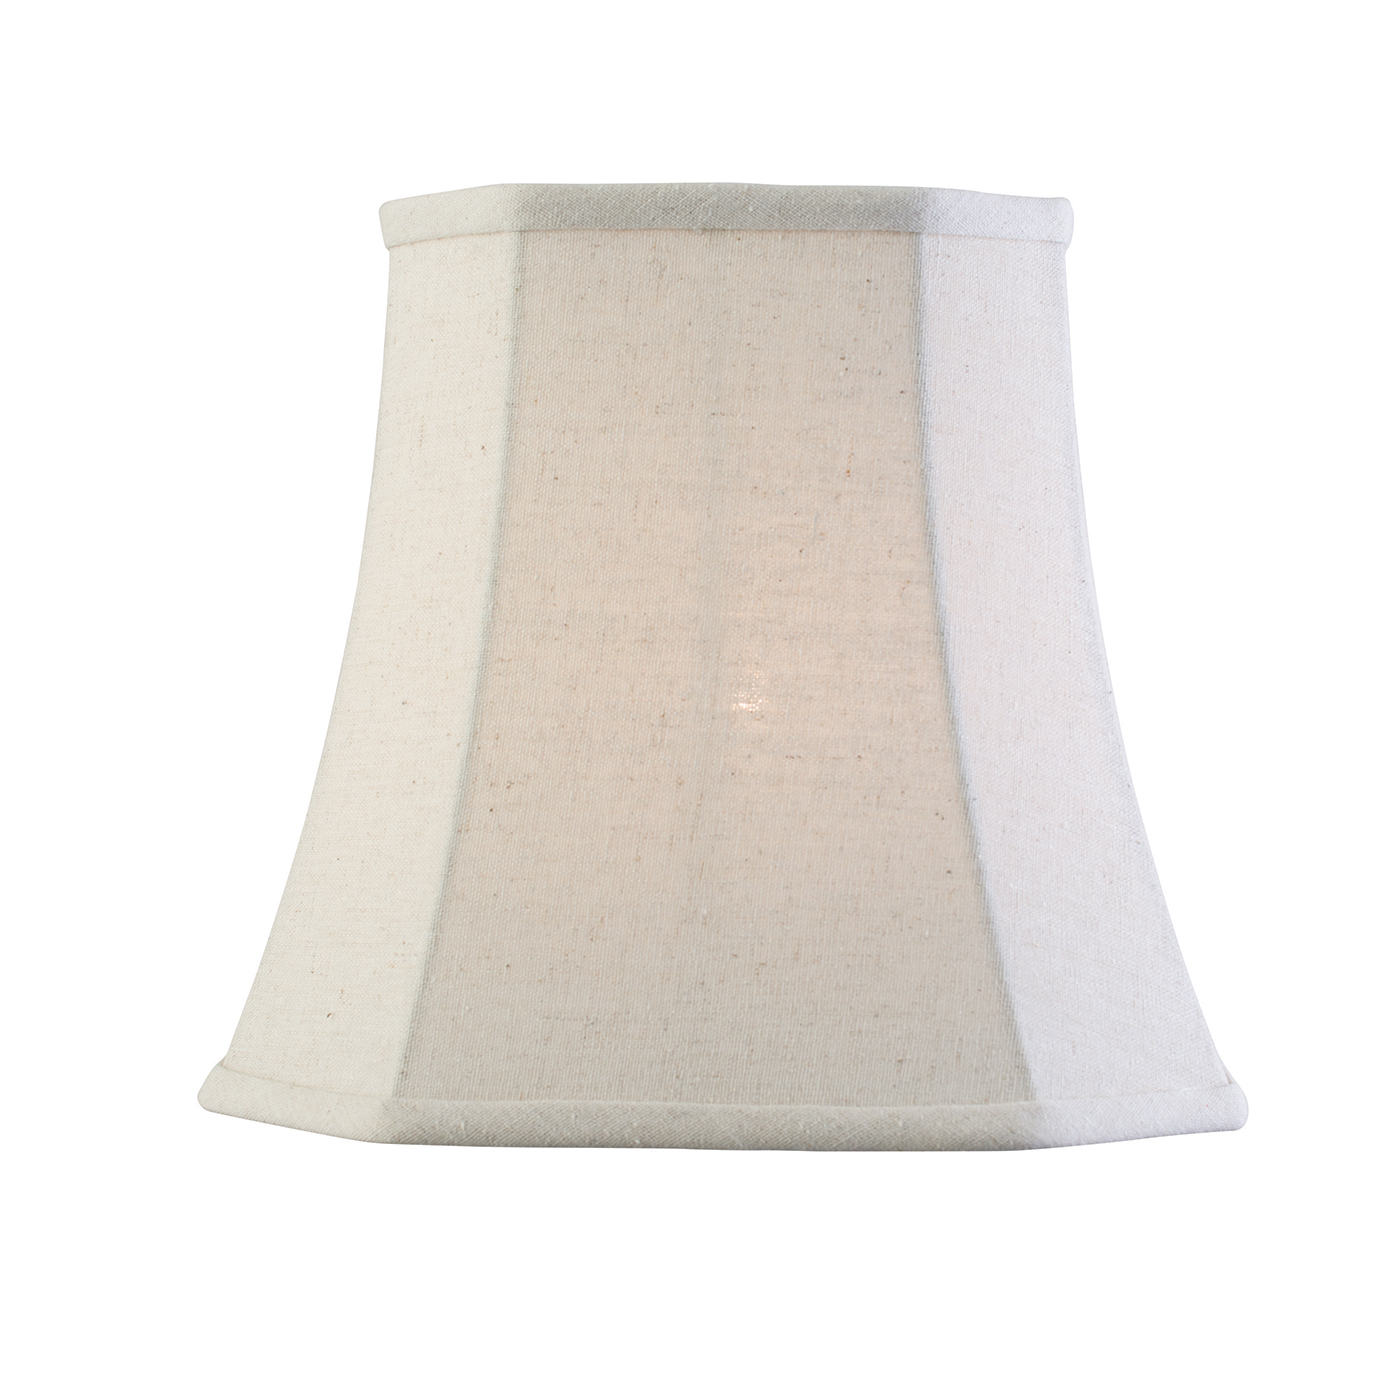 Endon 61363 Cilla Shade 10in Fxd Gimbal